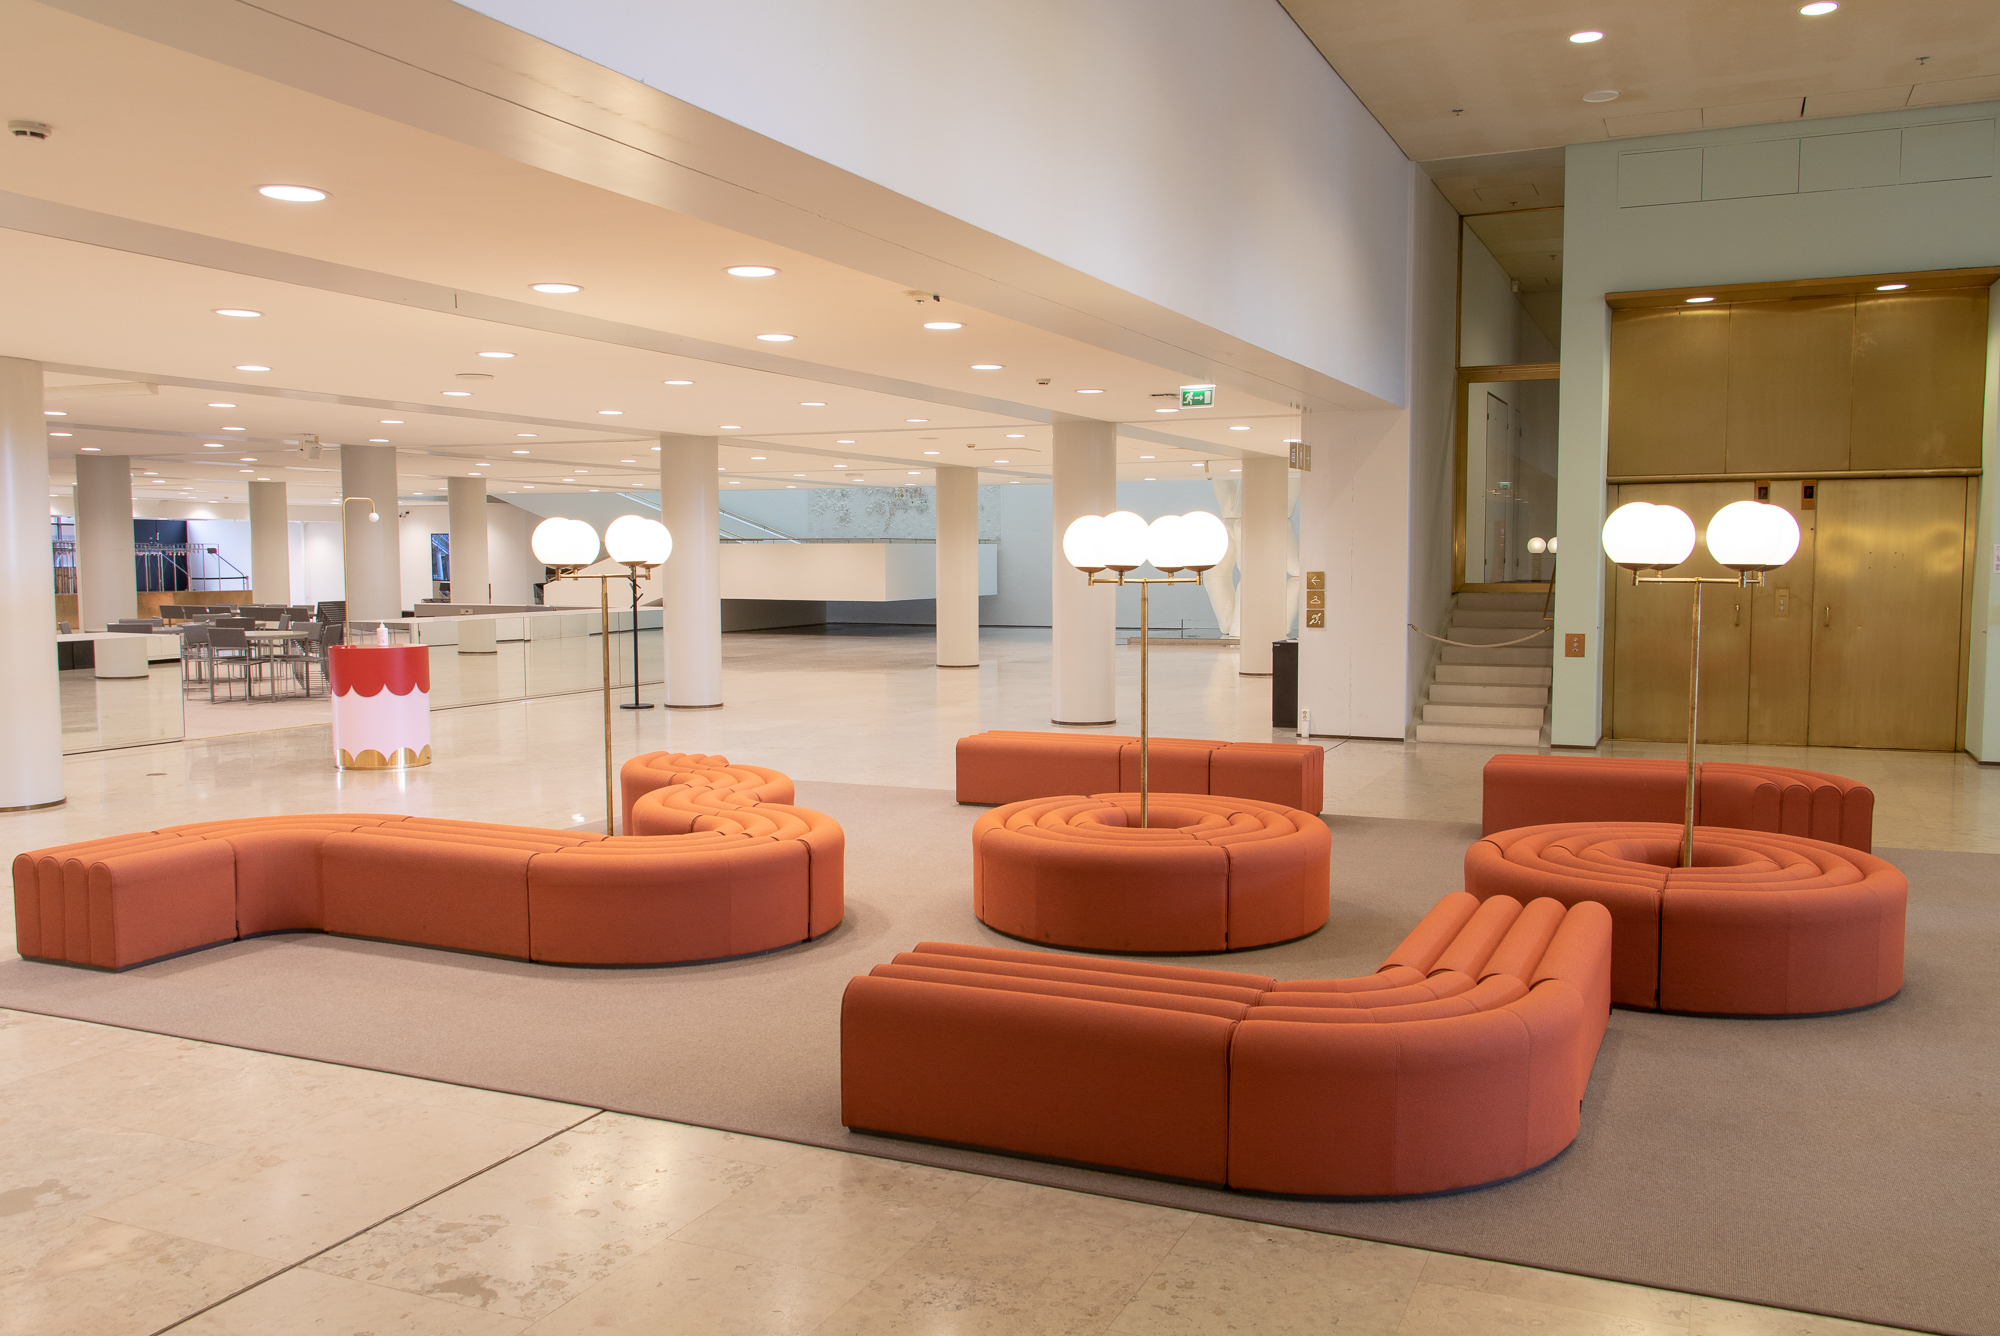 A reddish sofa and round-shaped lamps in the lobby.